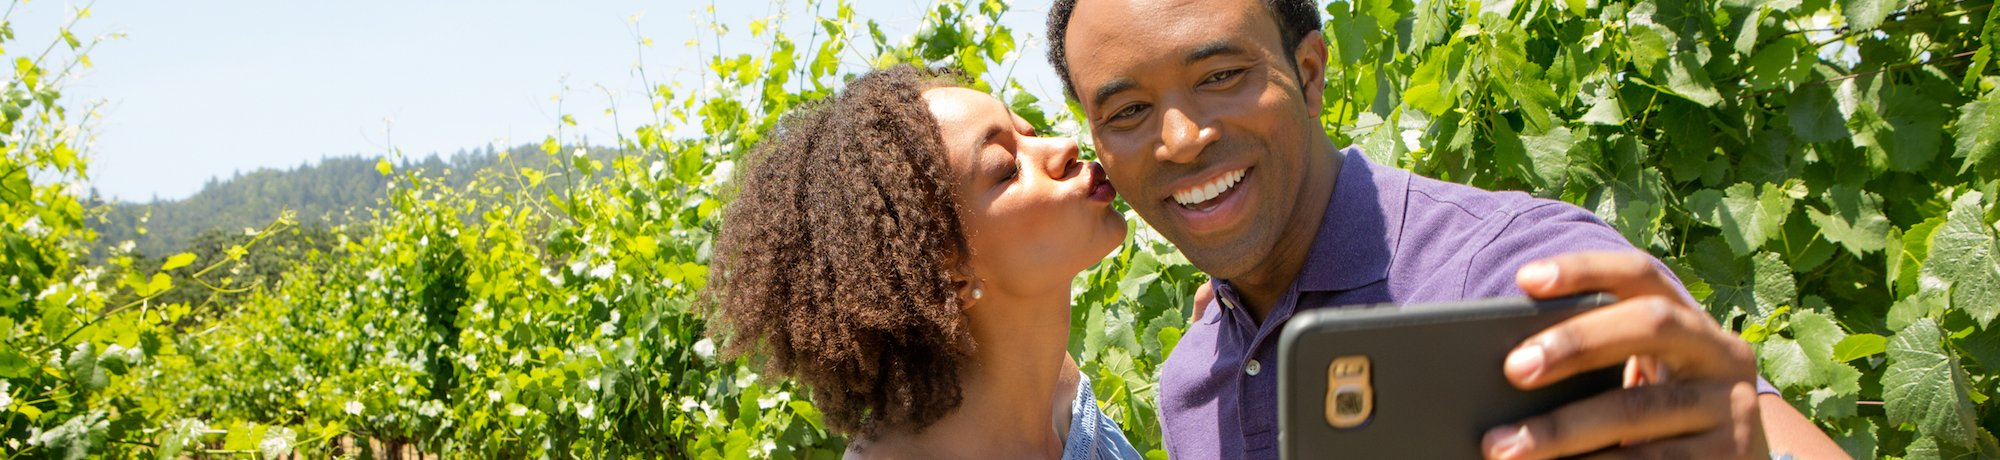 A couple takes a selfie on a cell phone in lush green vineyard in Napa Valley